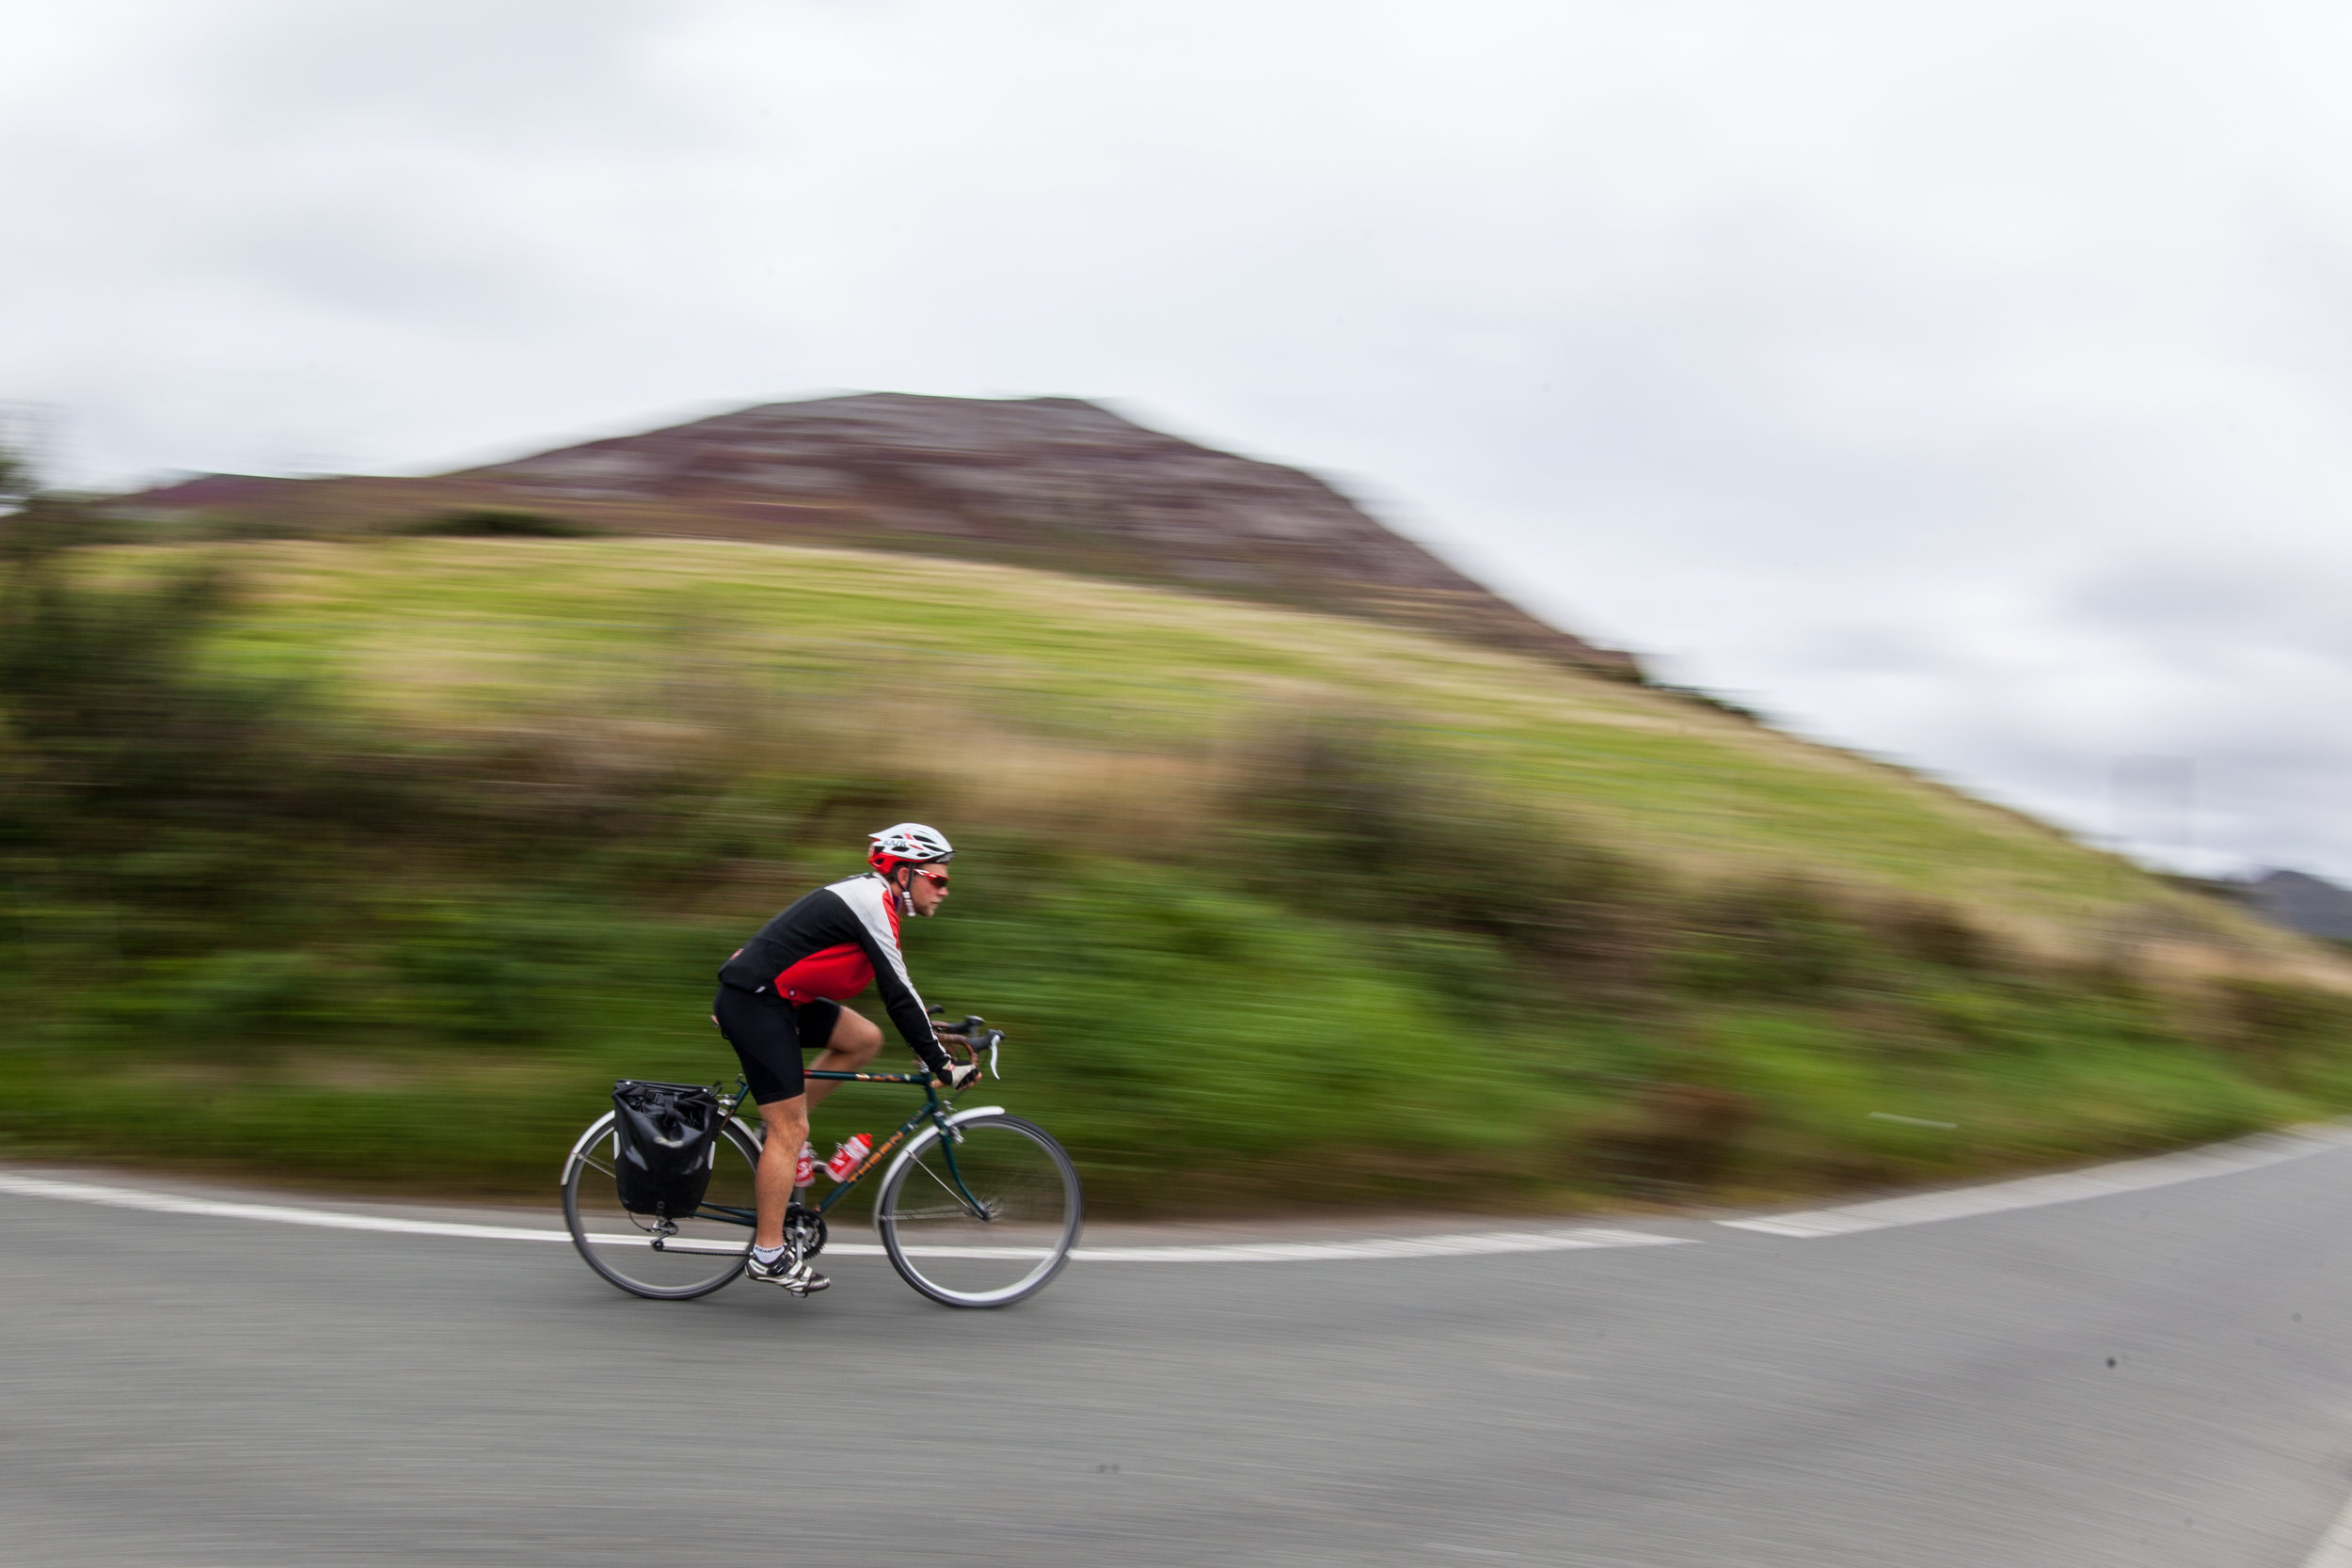 James cope riding fast in North Wales.